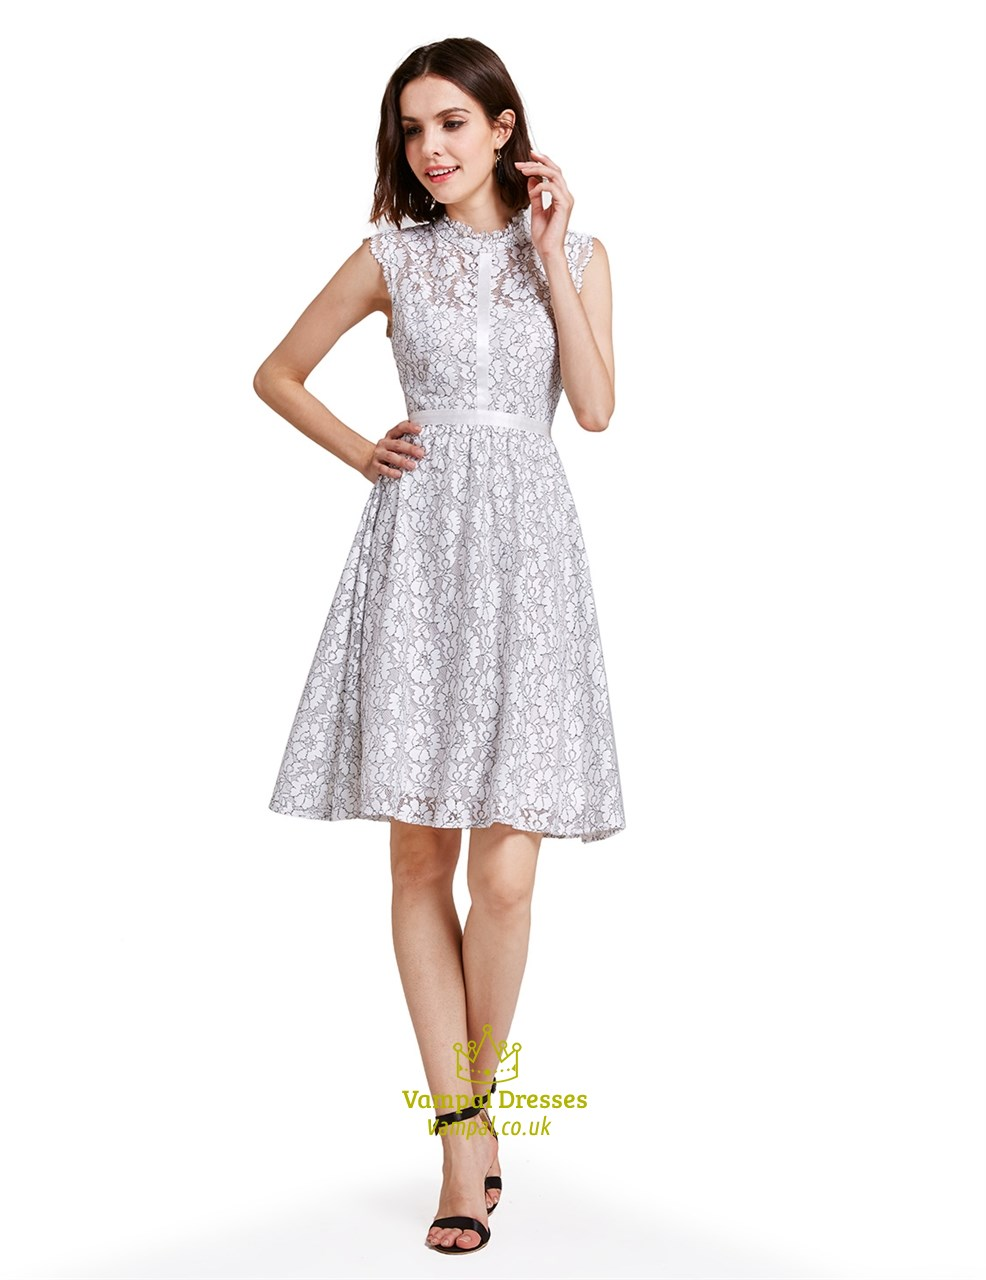 Lovely White A Line Knee Length Sleeveless Lace Cocktail